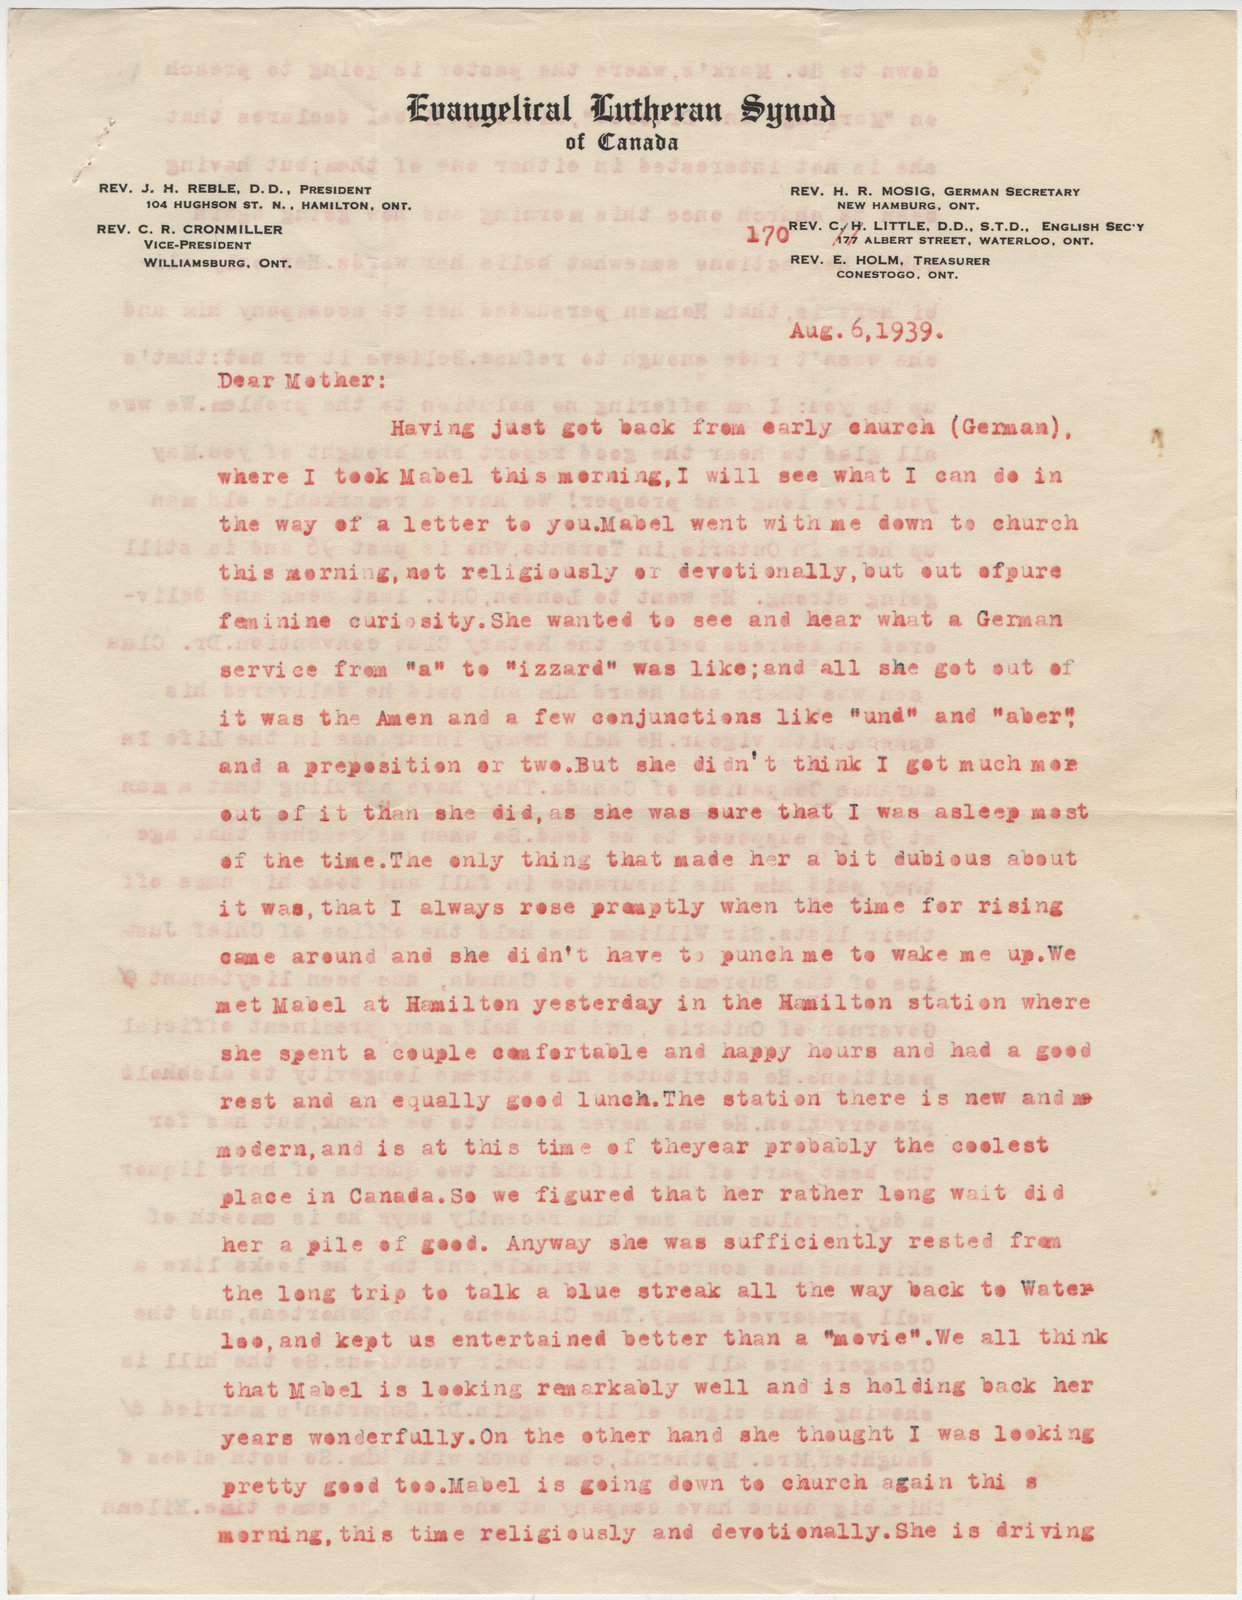 Letters from C. H. Little to Candace Little, August 6, 1939